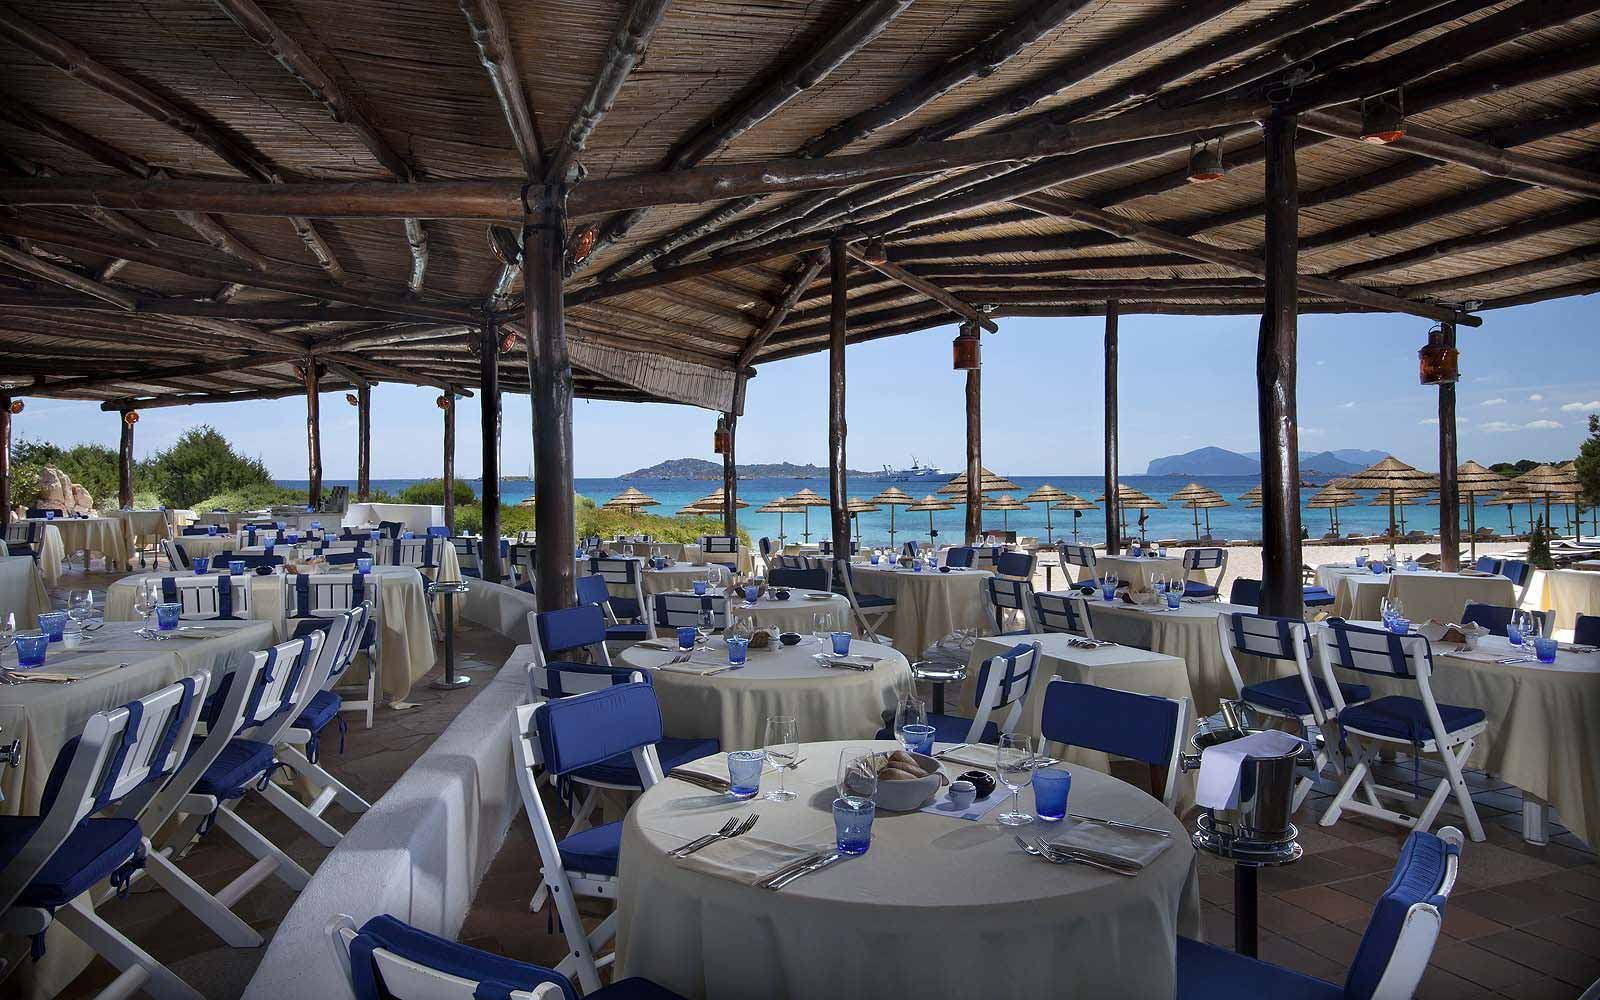 Barbeque restaurant on the beach at Hotel Romazzino